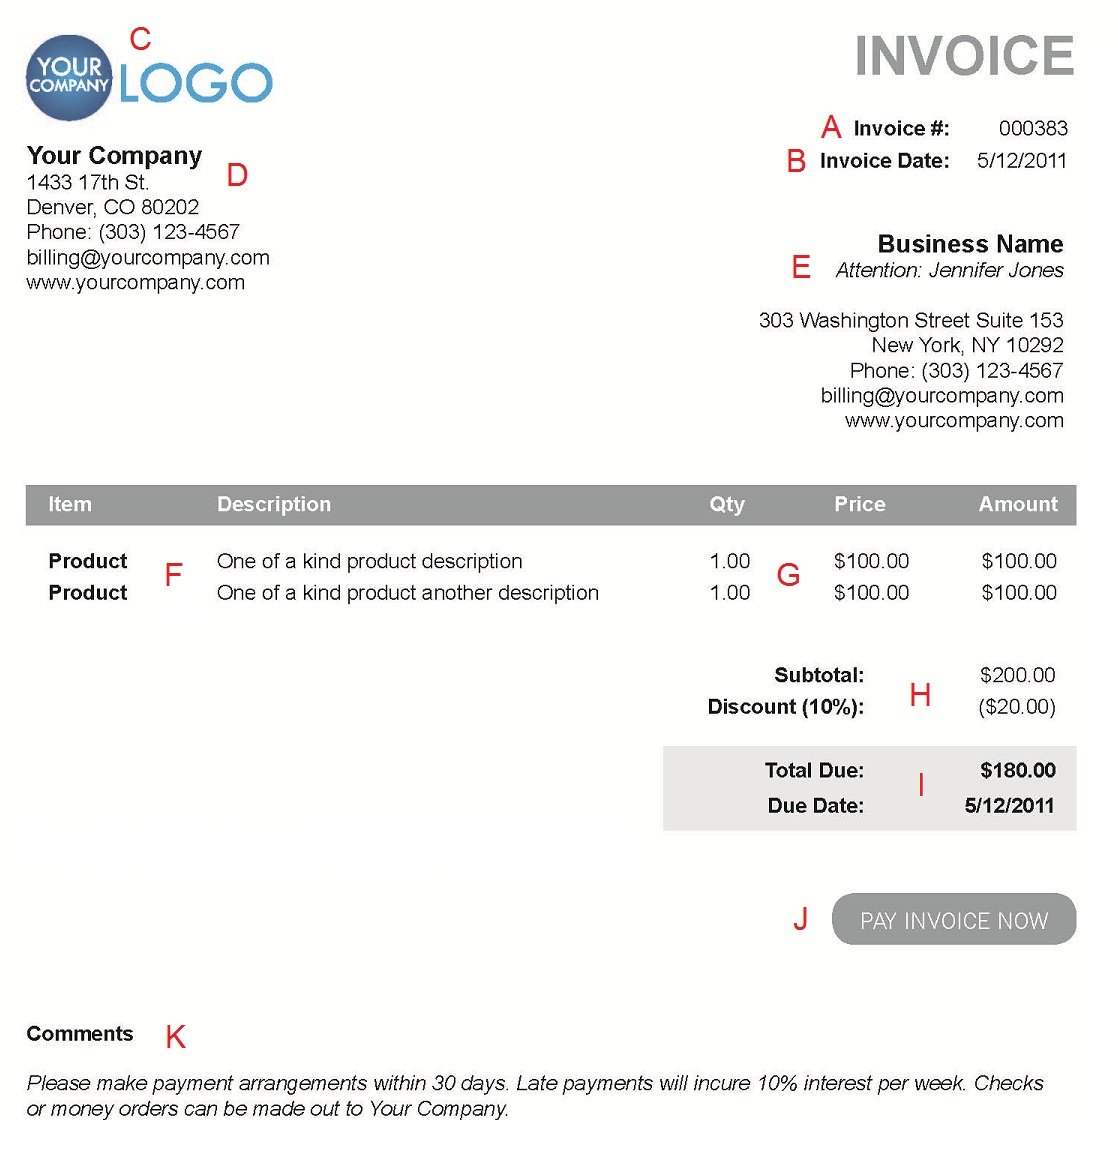 Aaaaeroincus  Surprising The  Different Sections Of An Electronic Payment Invoice With Fetching A  With Awesome Use Of Invoice Also Sample Of Invoice Template In Addition How To Invoice As A Sole Trader And Catering Invoice Template Free As Well As How To Print Invoice Additionally Invoices Management From Paysimplecom With Aaaaeroincus  Fetching The  Different Sections Of An Electronic Payment Invoice With Awesome A  And Surprising Use Of Invoice Also Sample Of Invoice Template In Addition How To Invoice As A Sole Trader From Paysimplecom